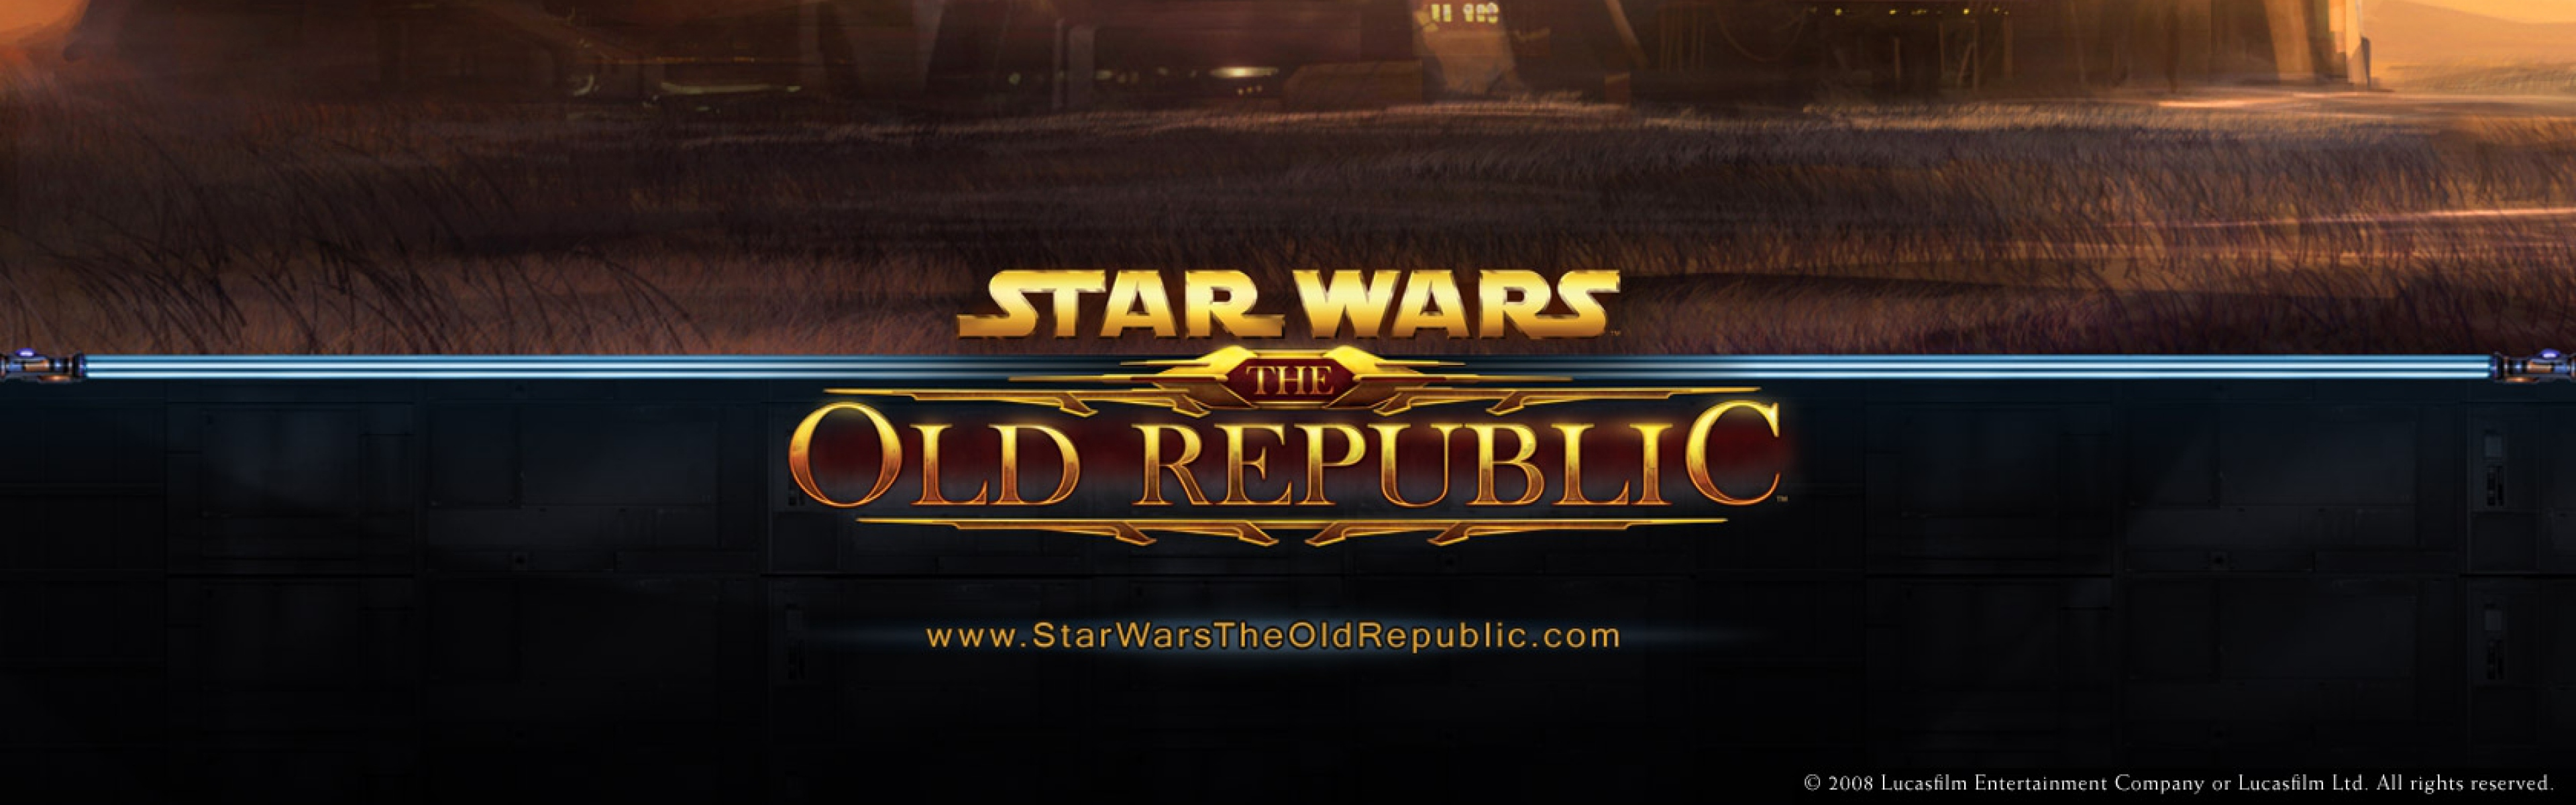 3840x1200 Wallpaper star wars the old republic houses sky planets 3840x1200